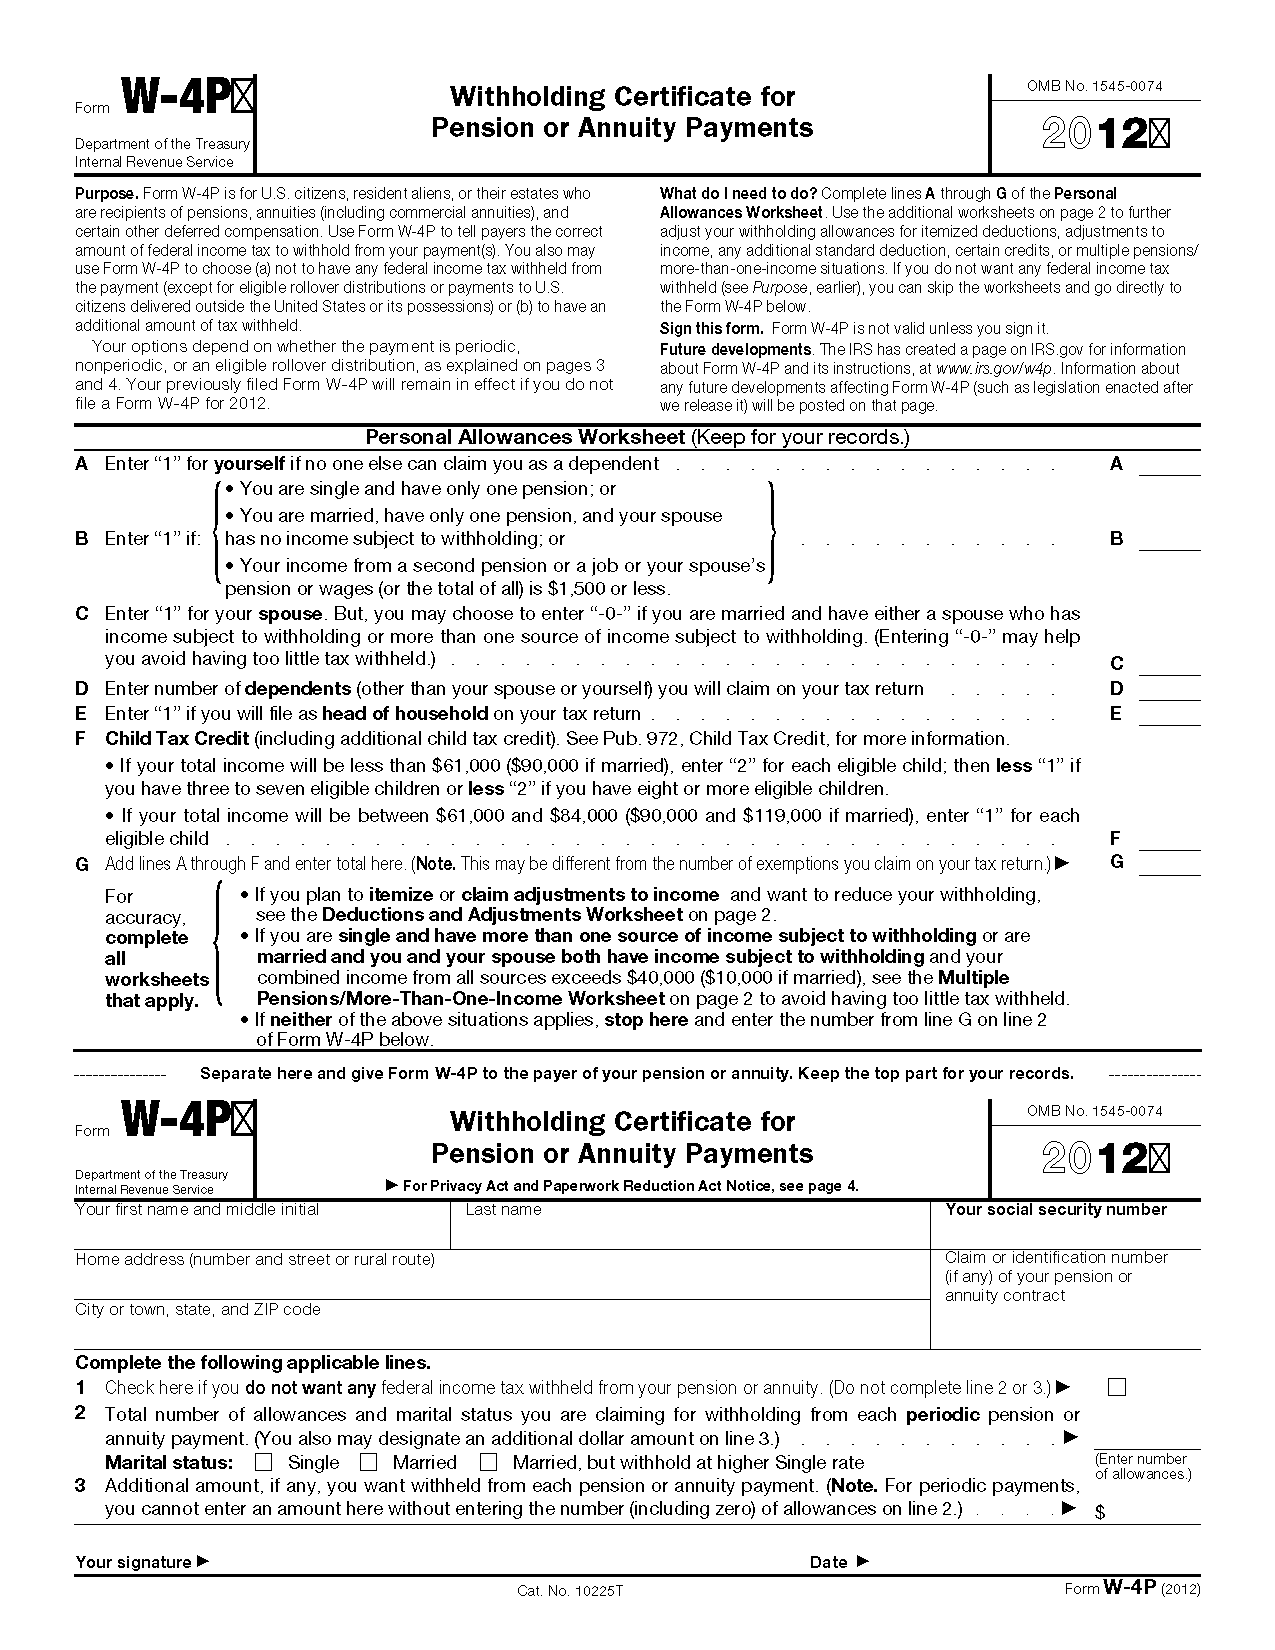 Form W 4p Withholding Certificate For Pension Or Annuity